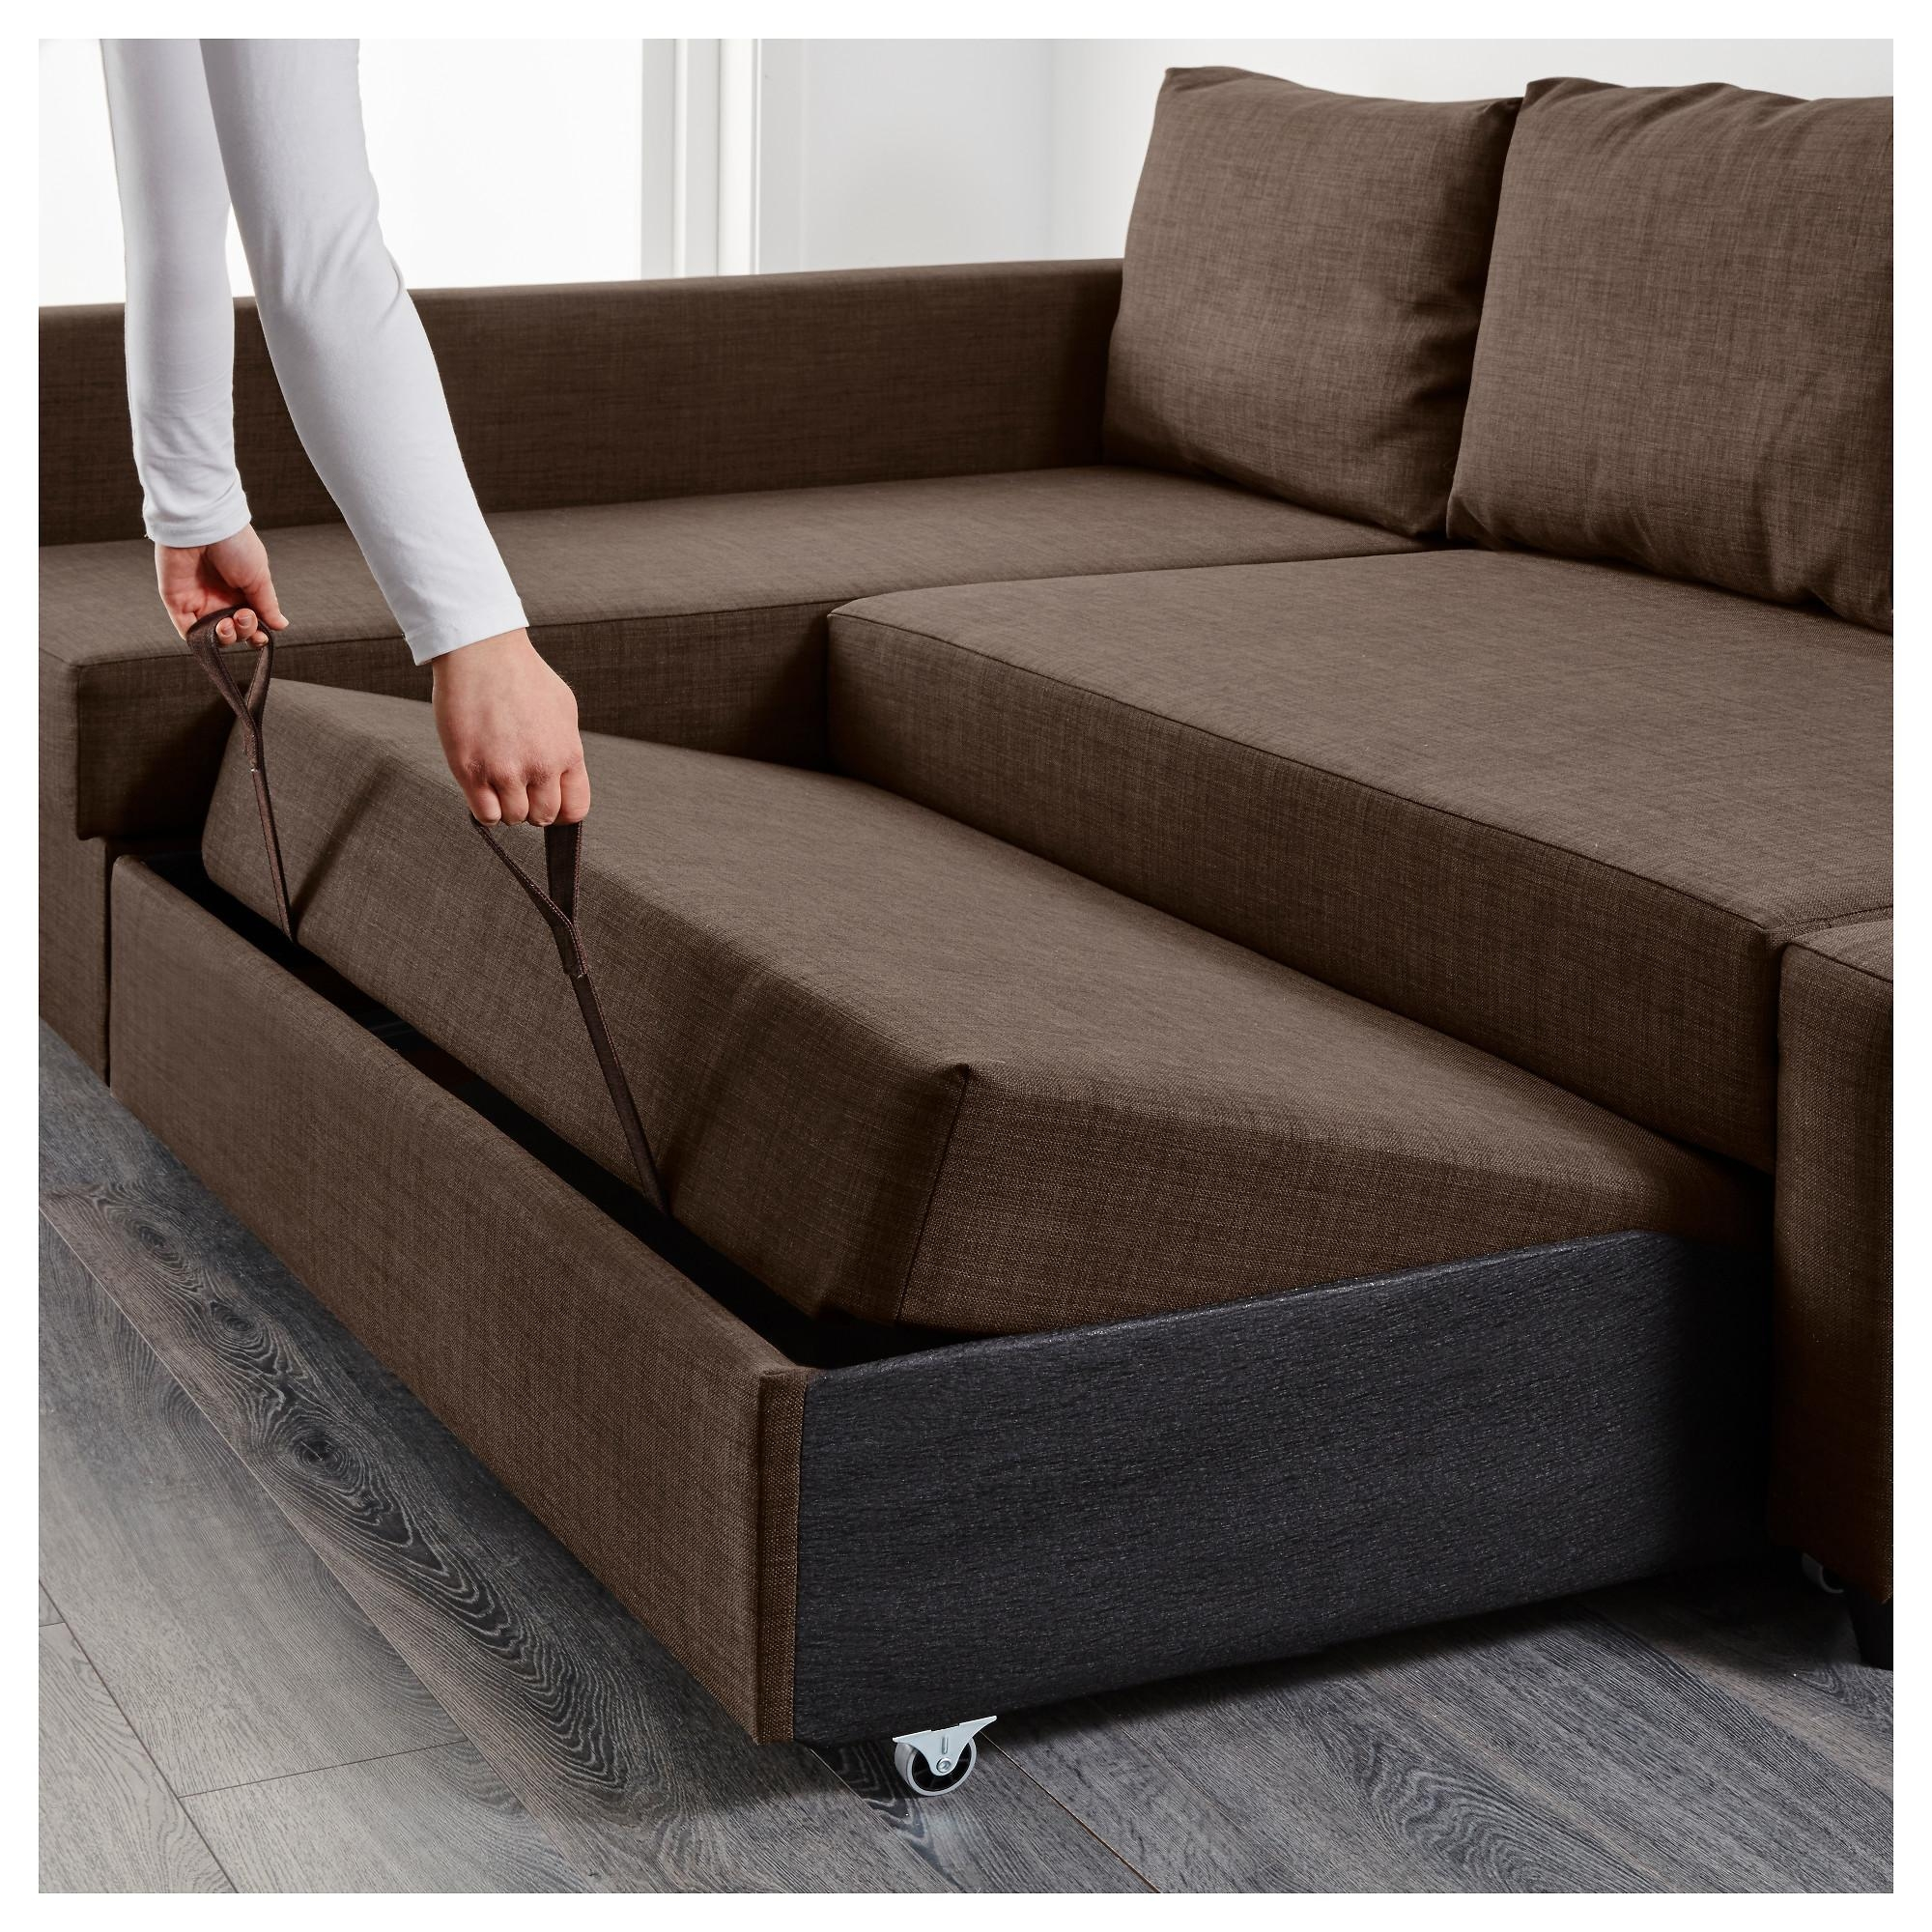 Furniture: Ikea Sofa Bed | Ikea Sofa Beds | Corner Sofa Bed Ikea Inside L Shaped Sofa Bed (View 11 of 20)